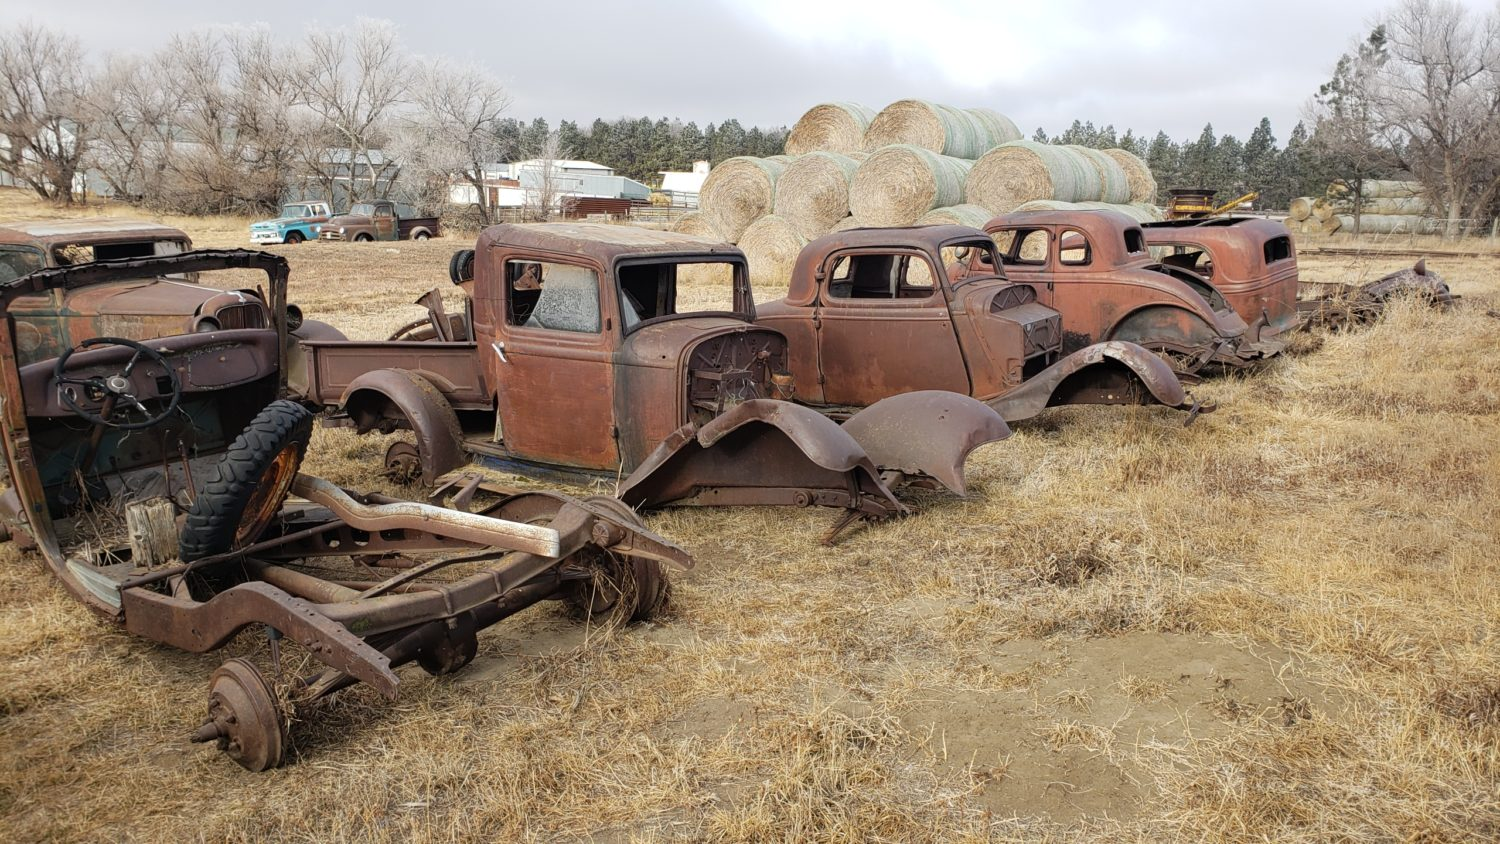 Fabulous Collector Cars, Antique Tractors, Memorabilia & More! The Krinke Collection - image 11